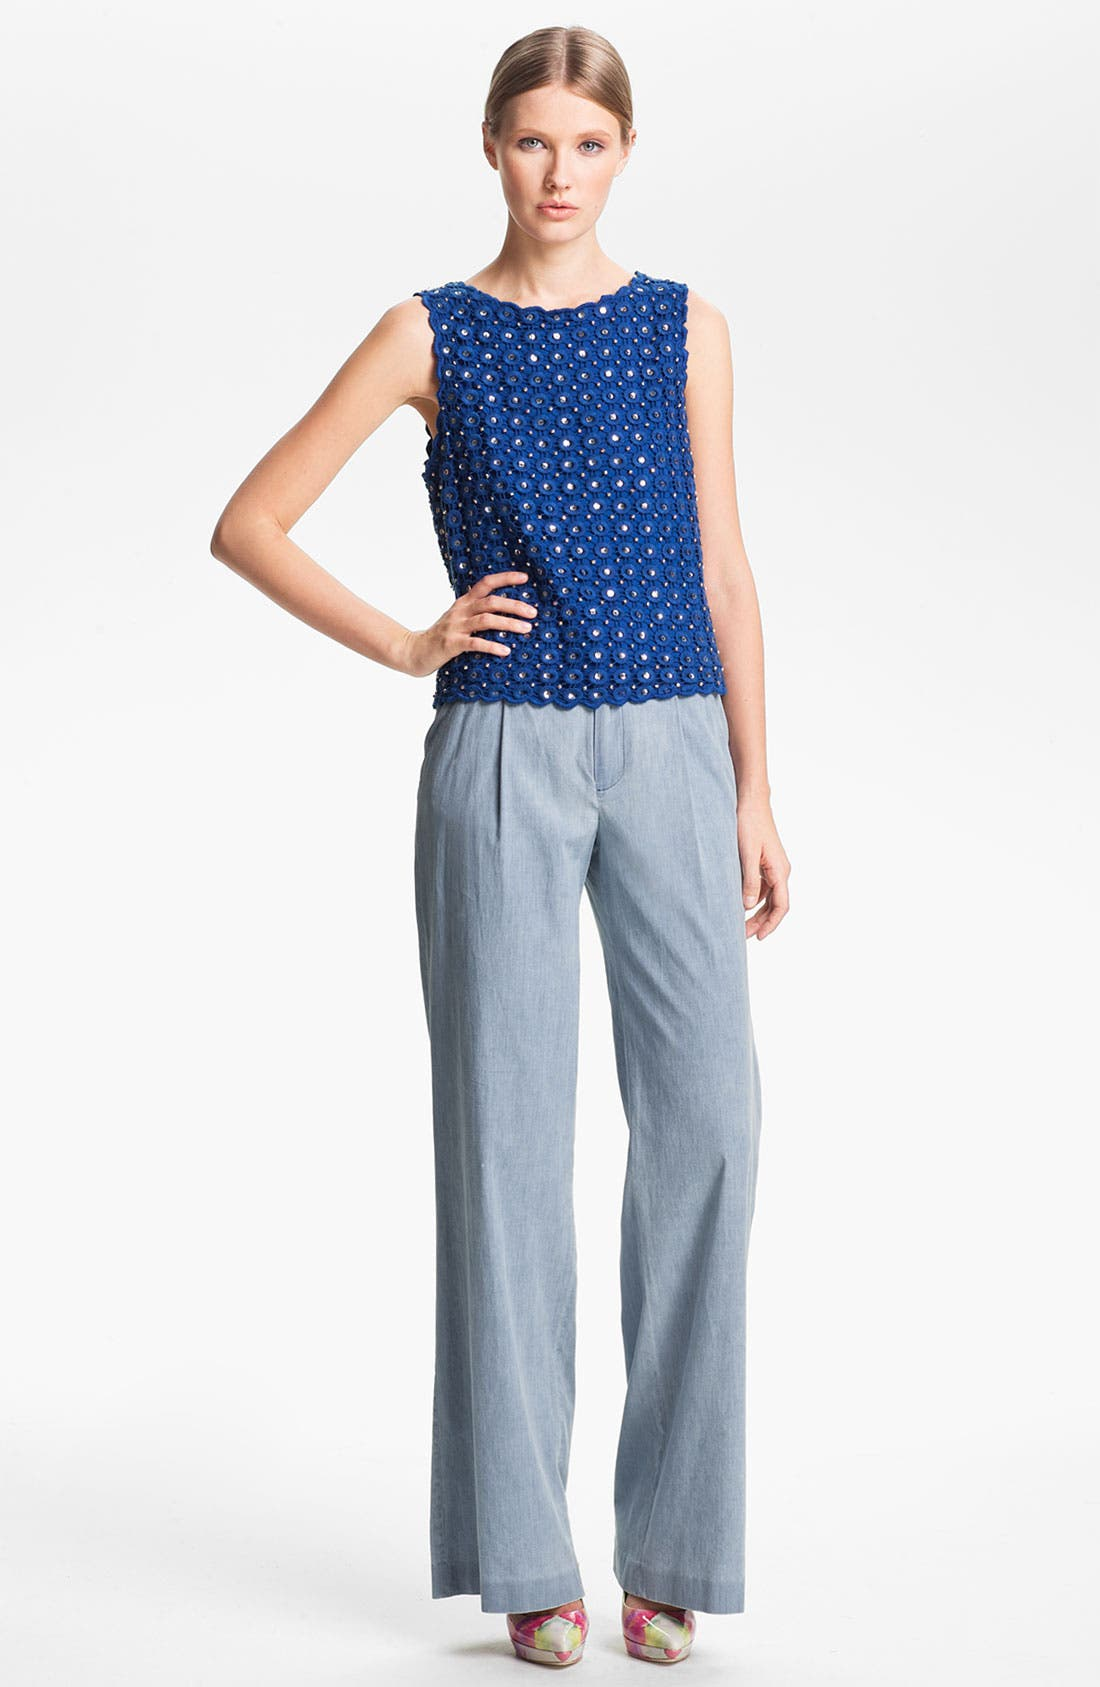 Alternate Image 1 Selected - Alice + Olivia Top & Pants